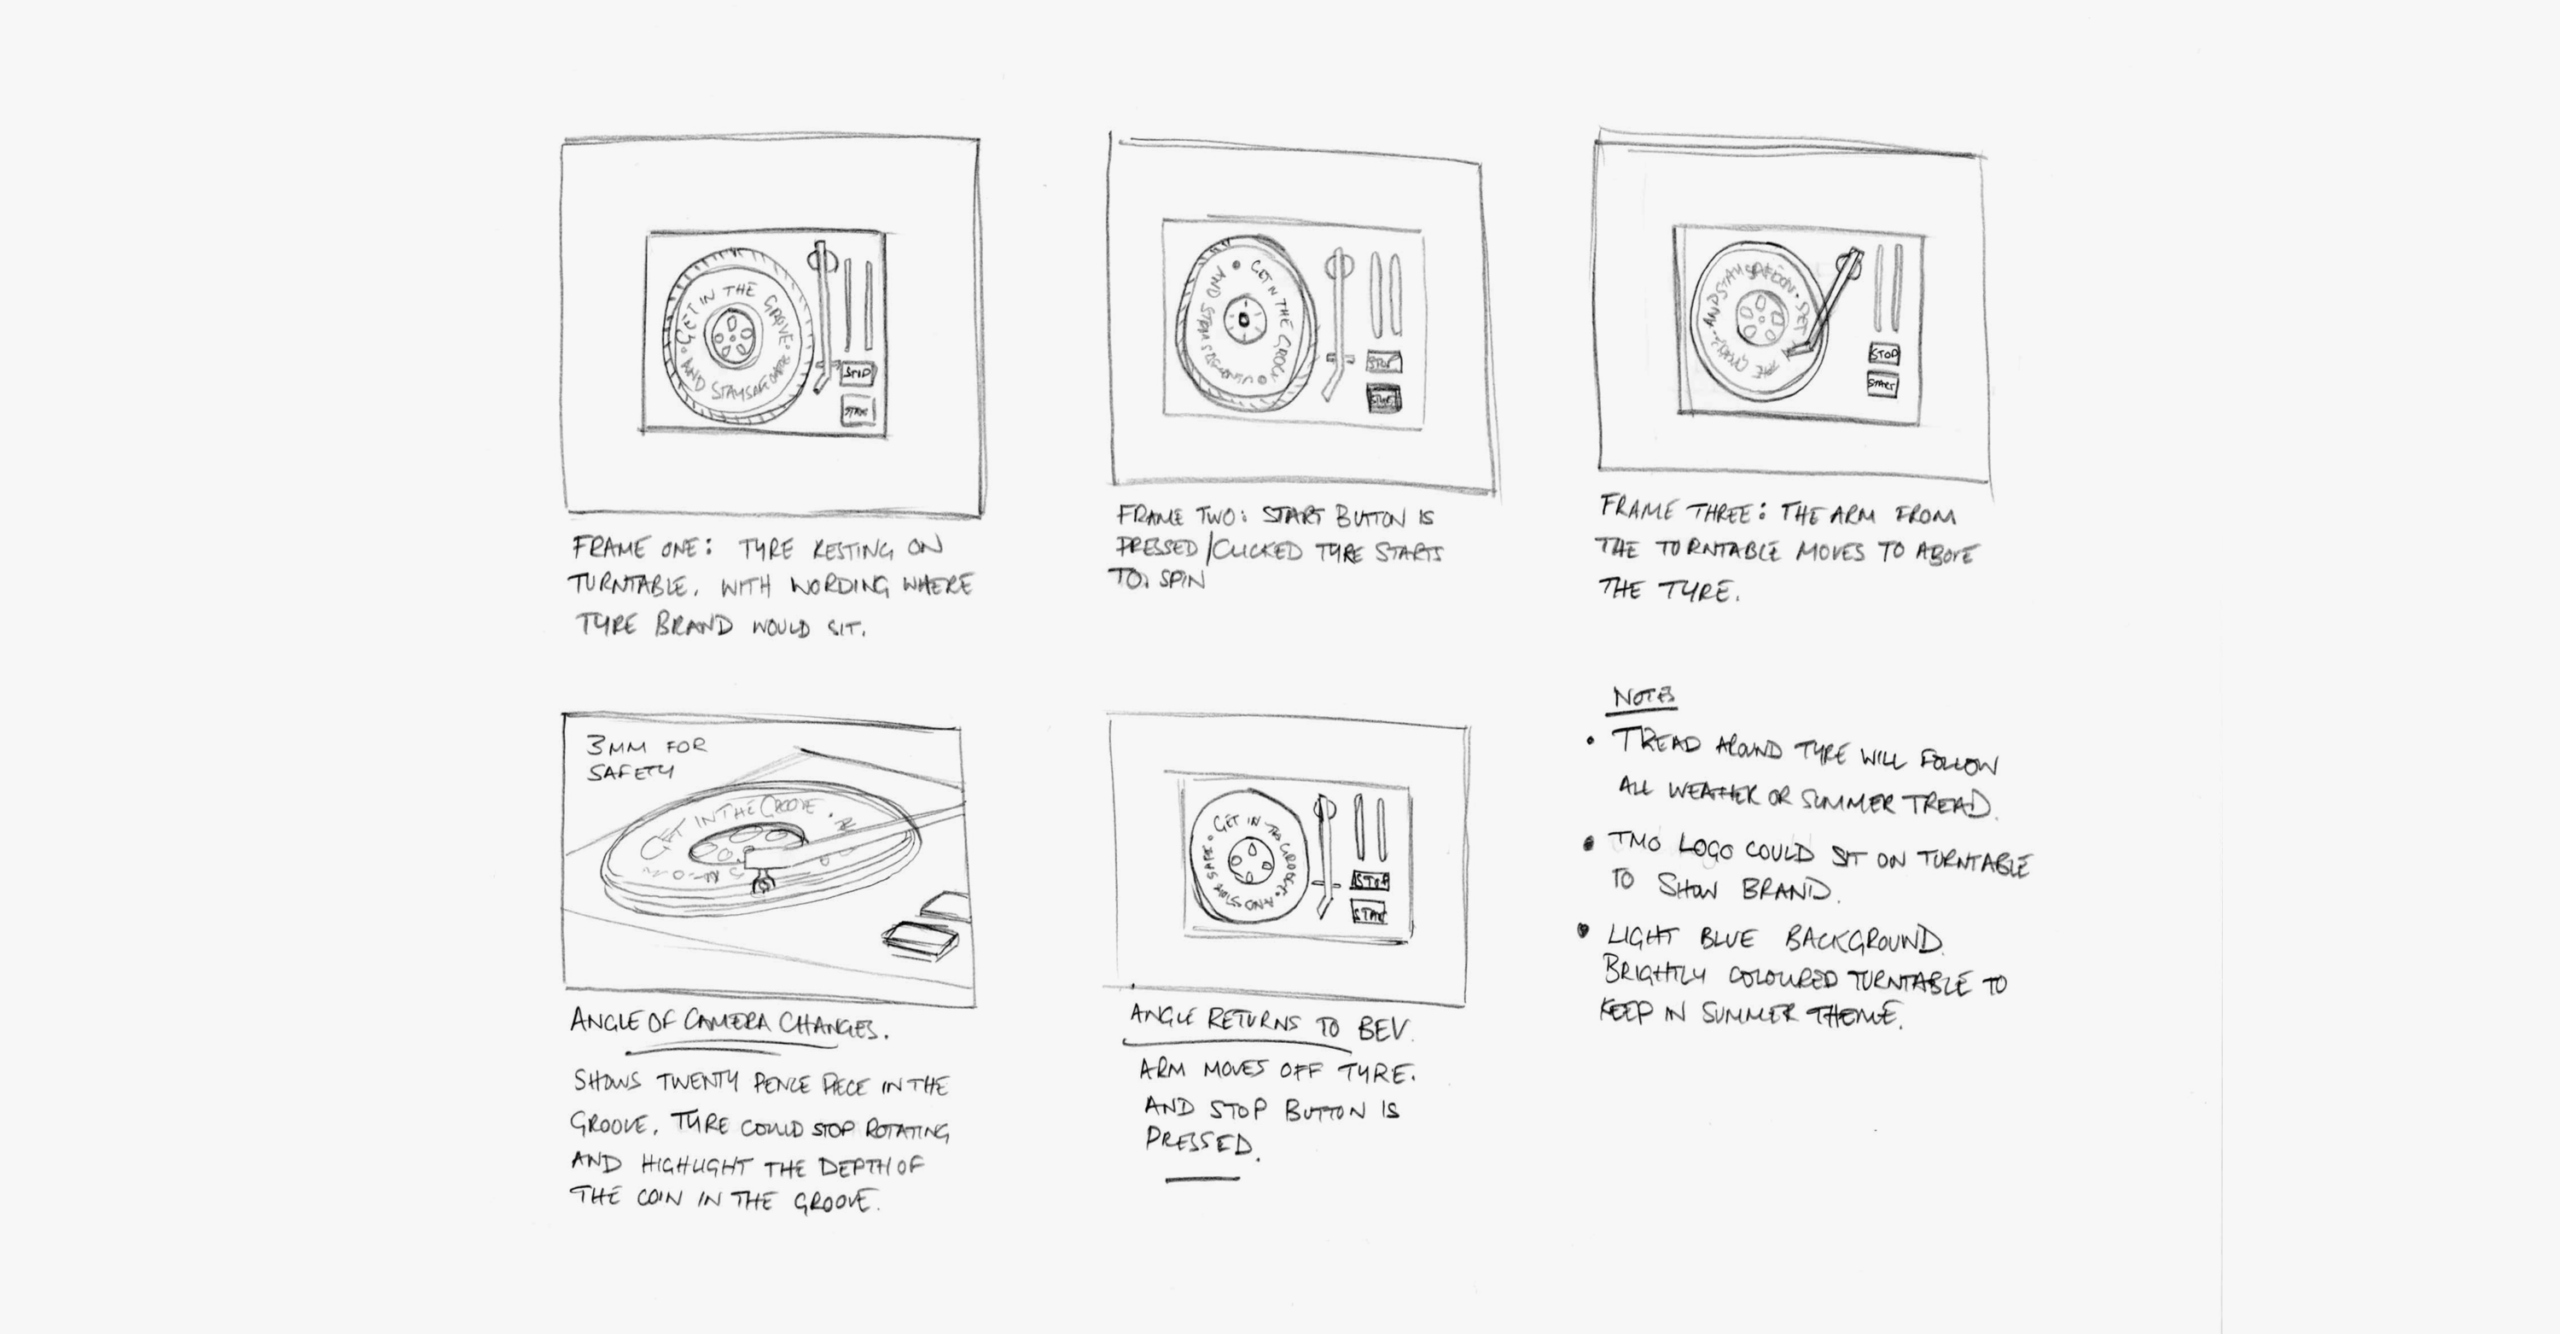 The right atyre campaign sketches